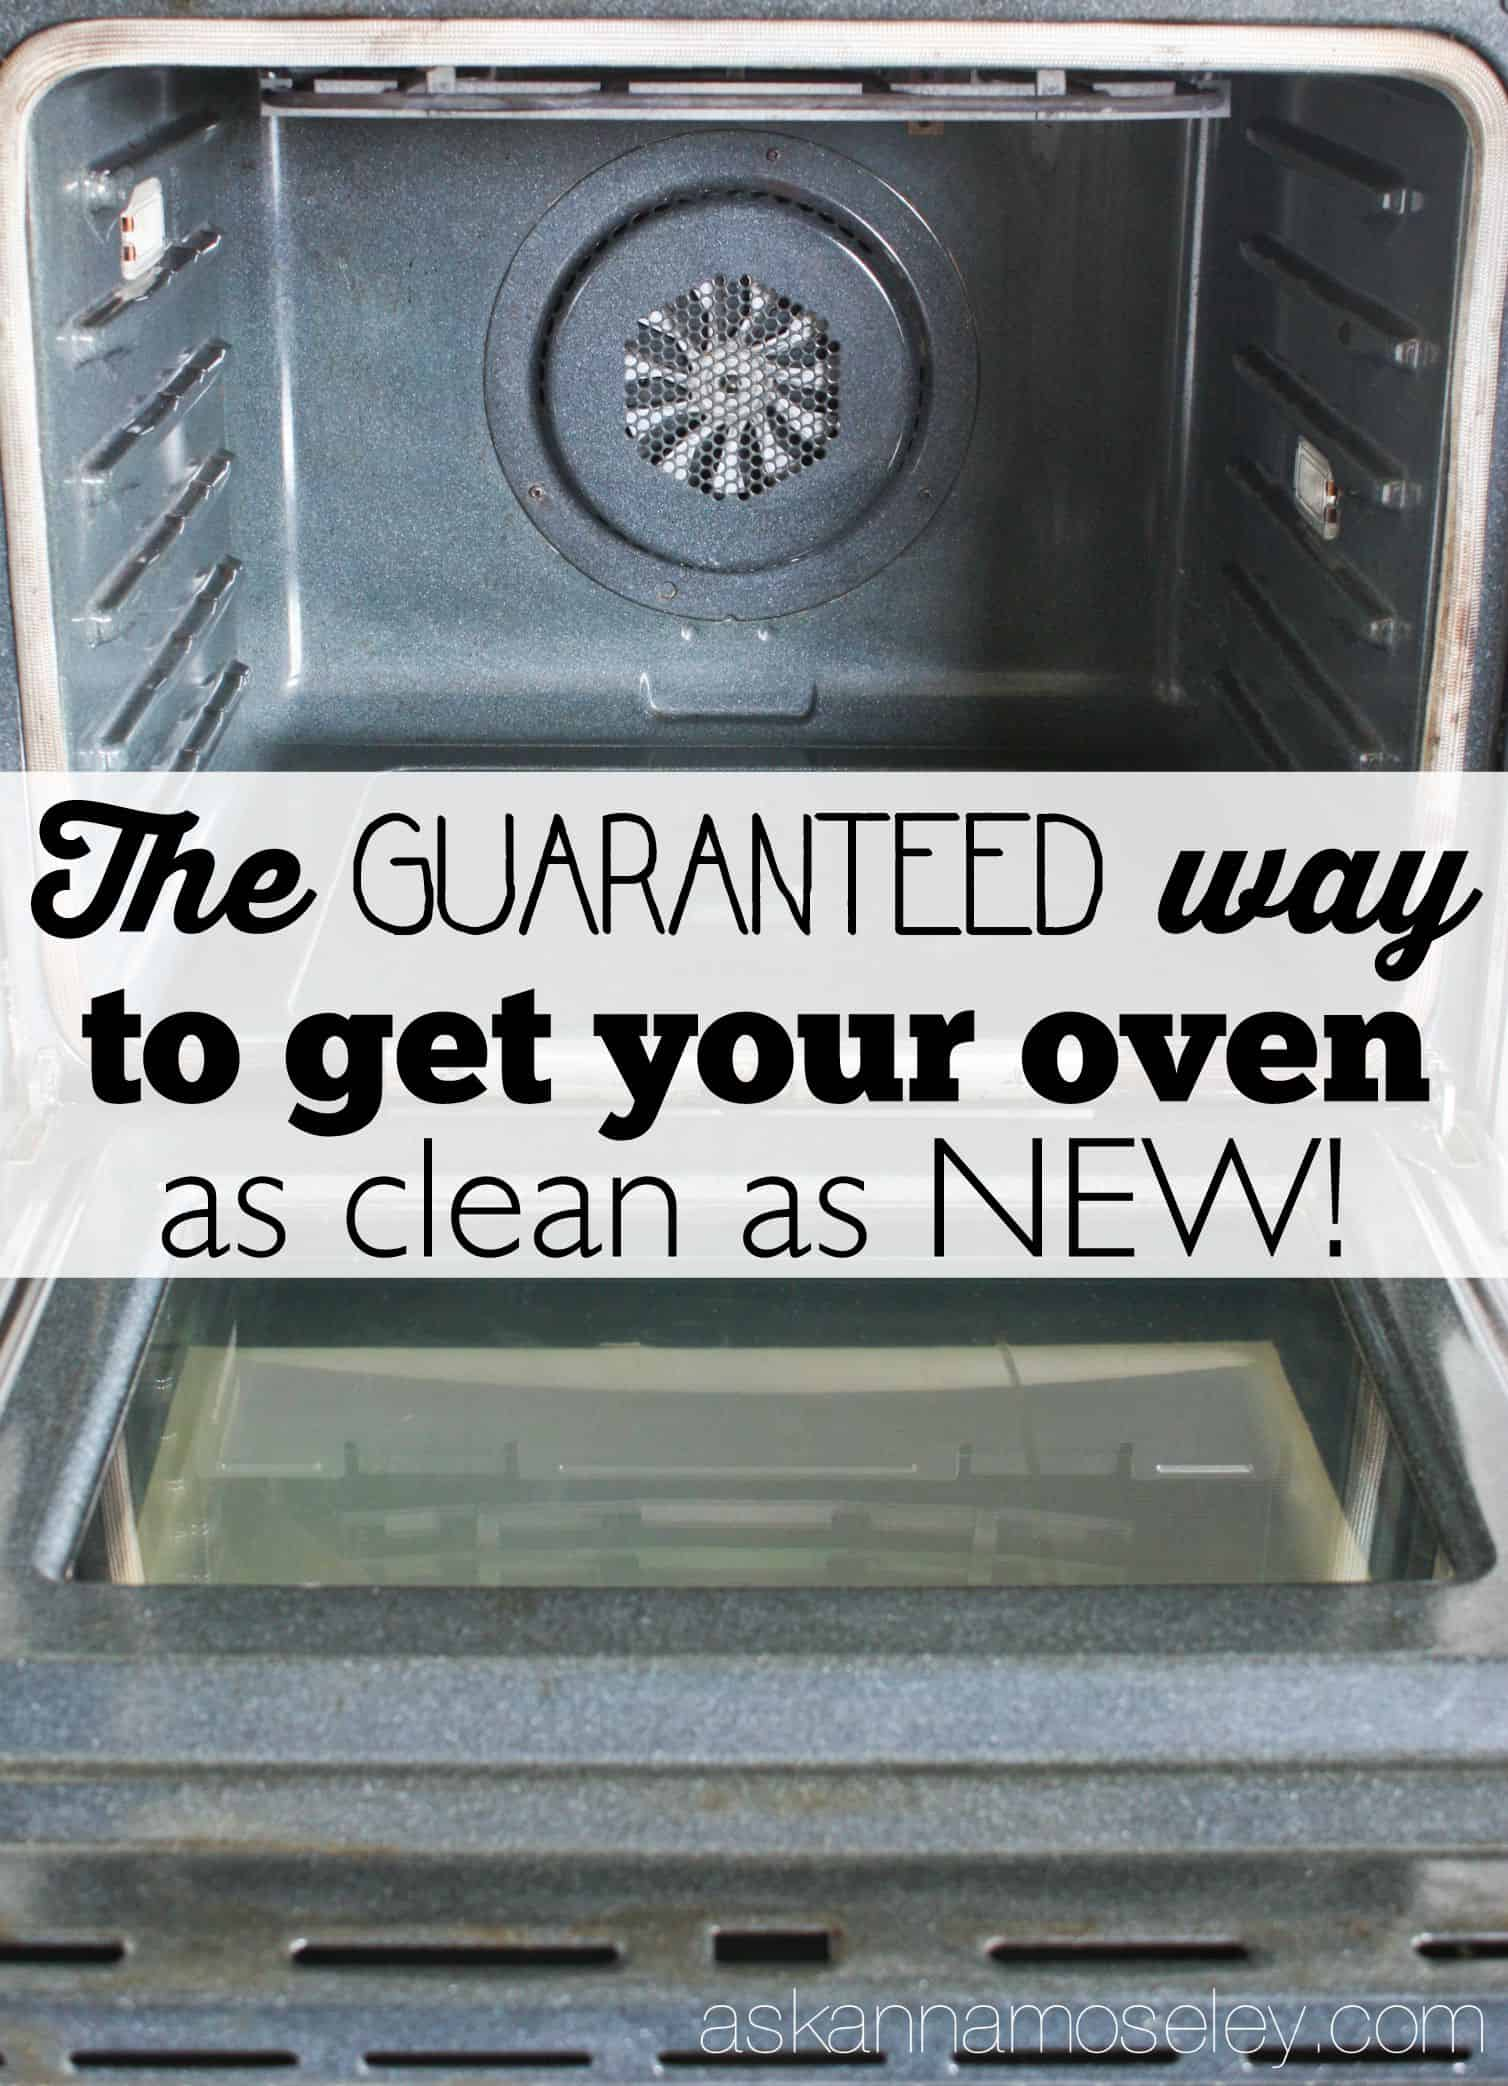 The guaranteed way to make your oven clean as new - Ask Anna